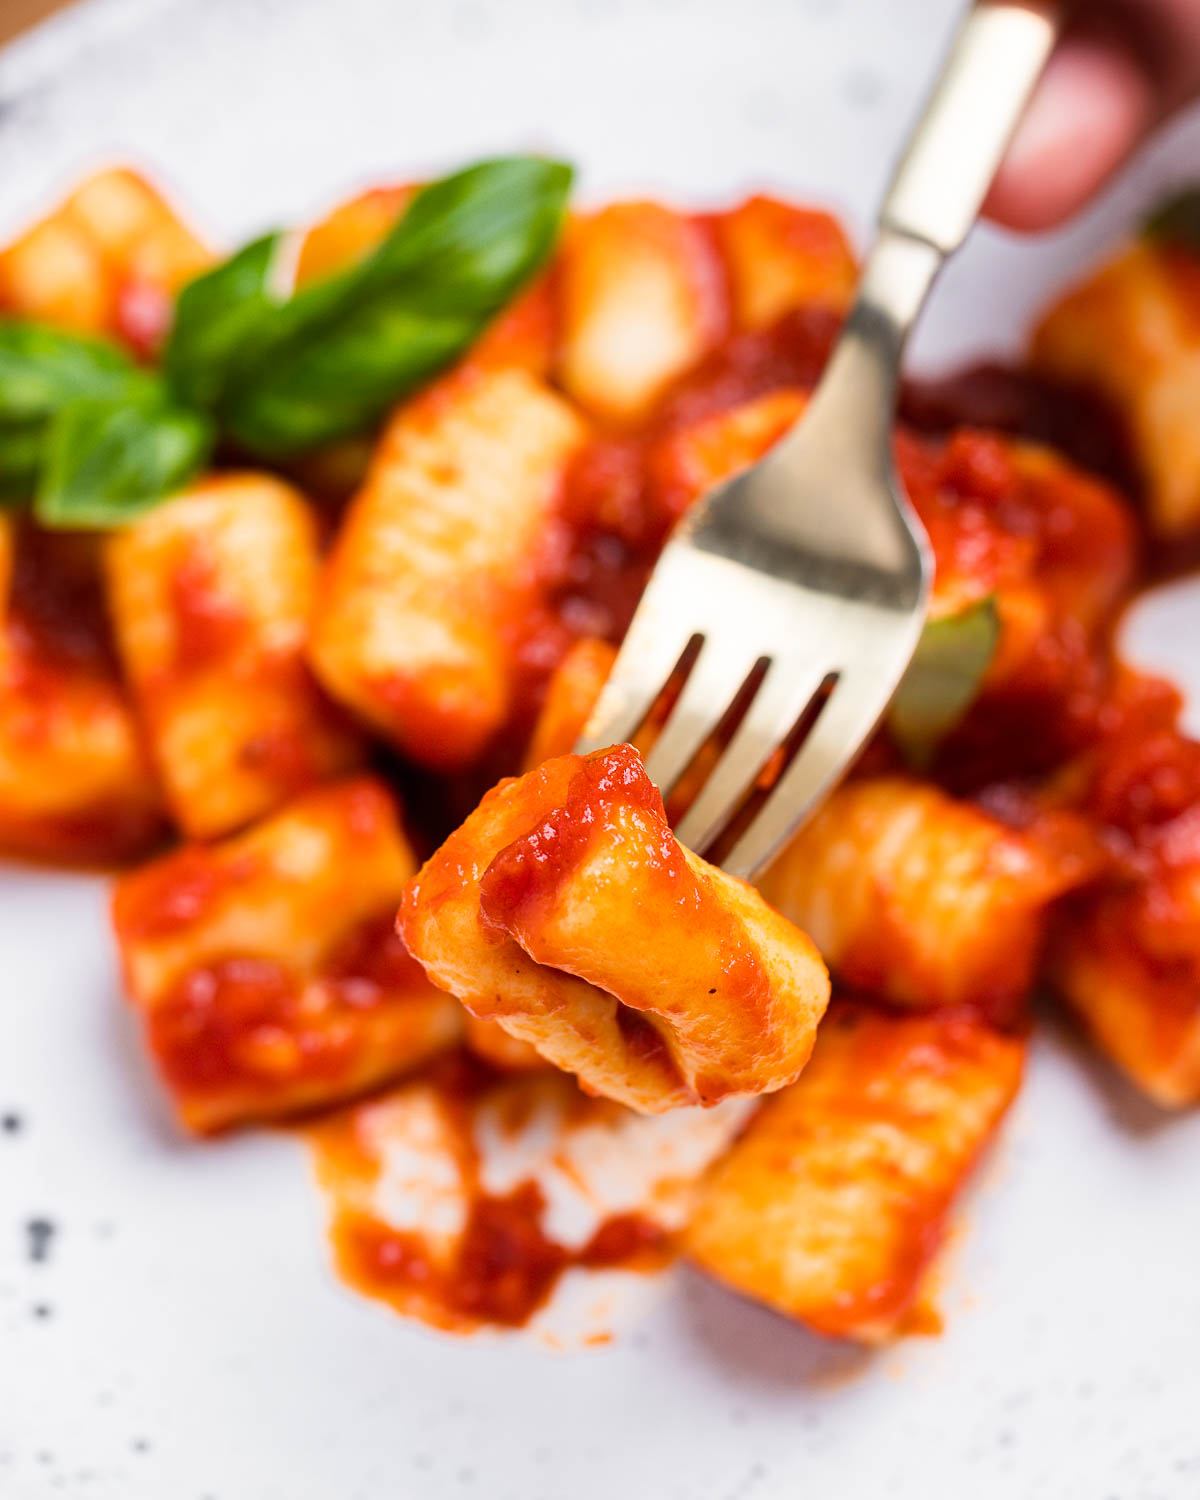 Fork holding one piece of potato gnocchi in tomato sauce.